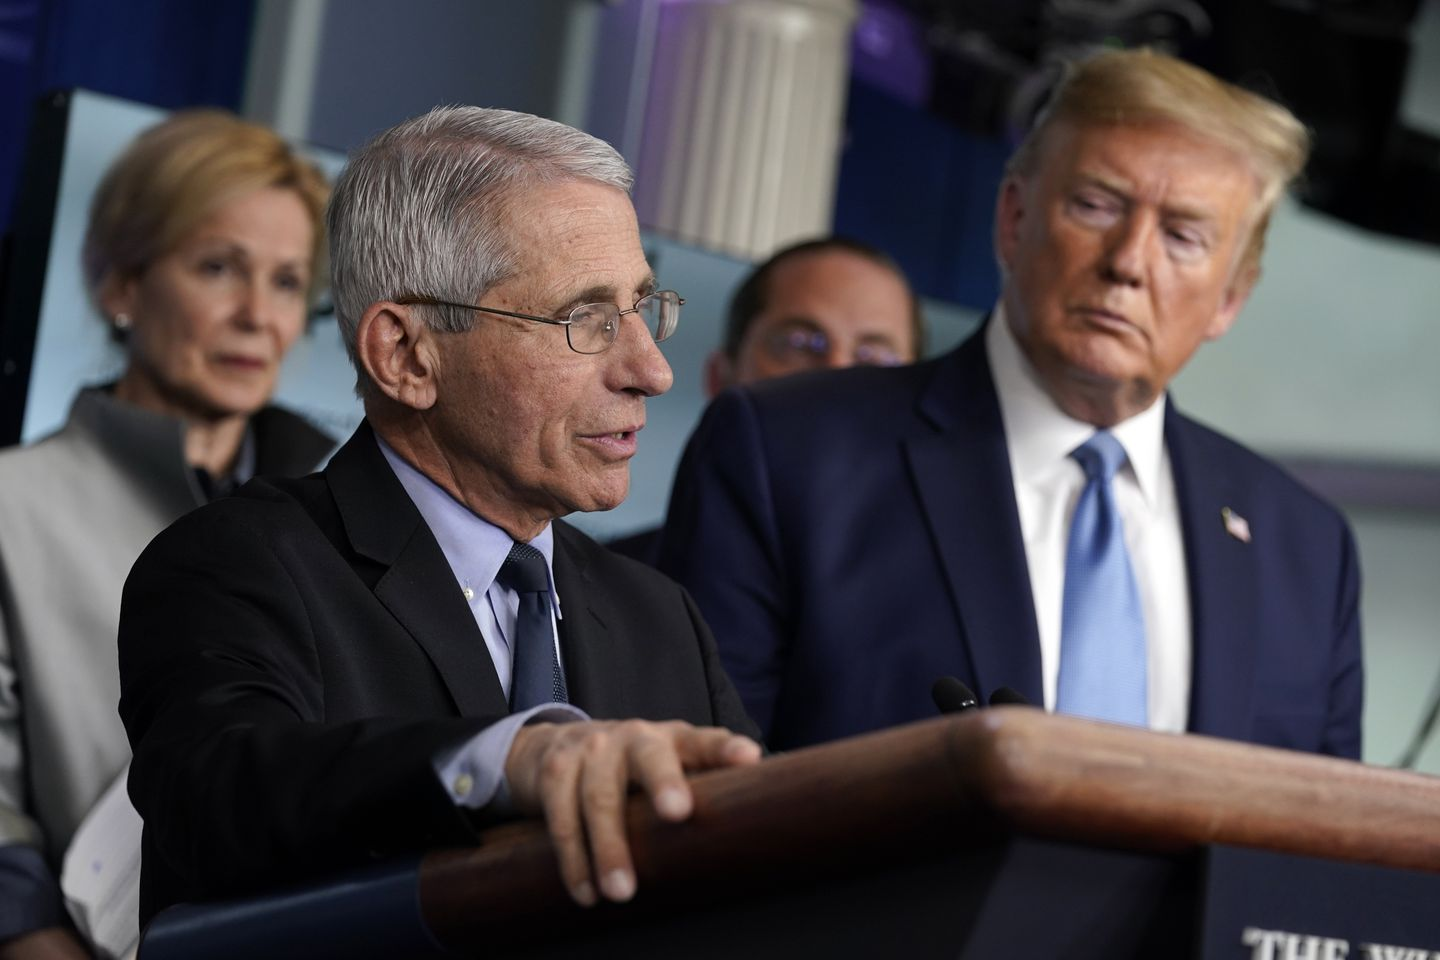 Dr. Anthony Fauci, director of the National Institute of Allergy and Infectious Diseases spoke at the White House Monday.